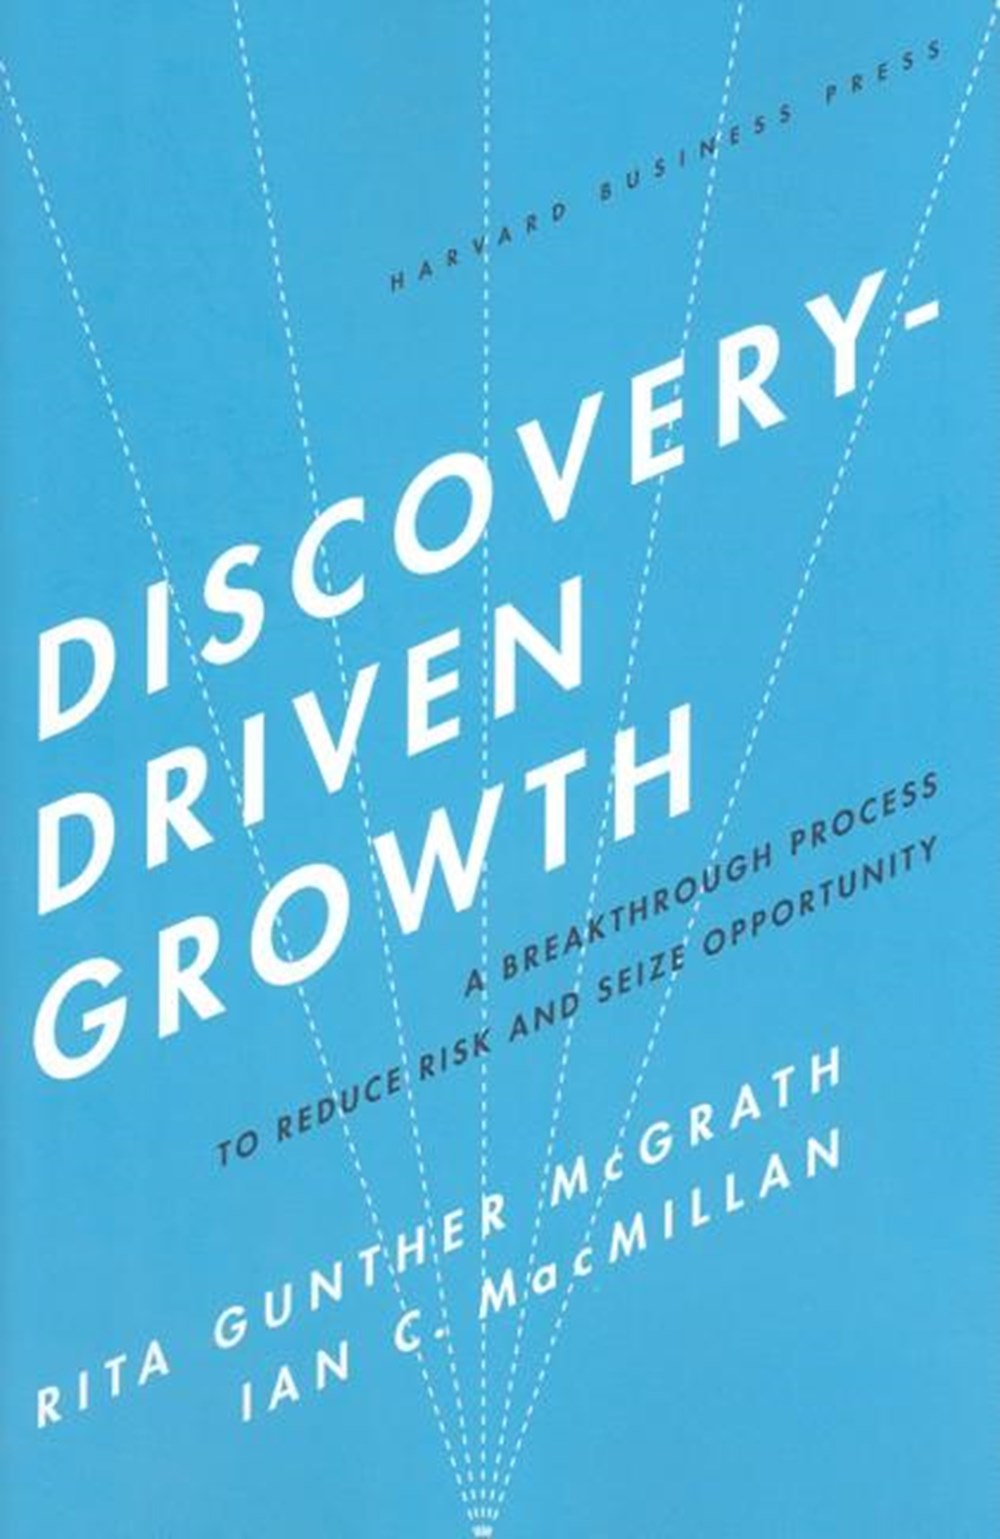 Discovery-Driven Growth A Breakthrough Process to Reduce Risk and Seize Opportunity